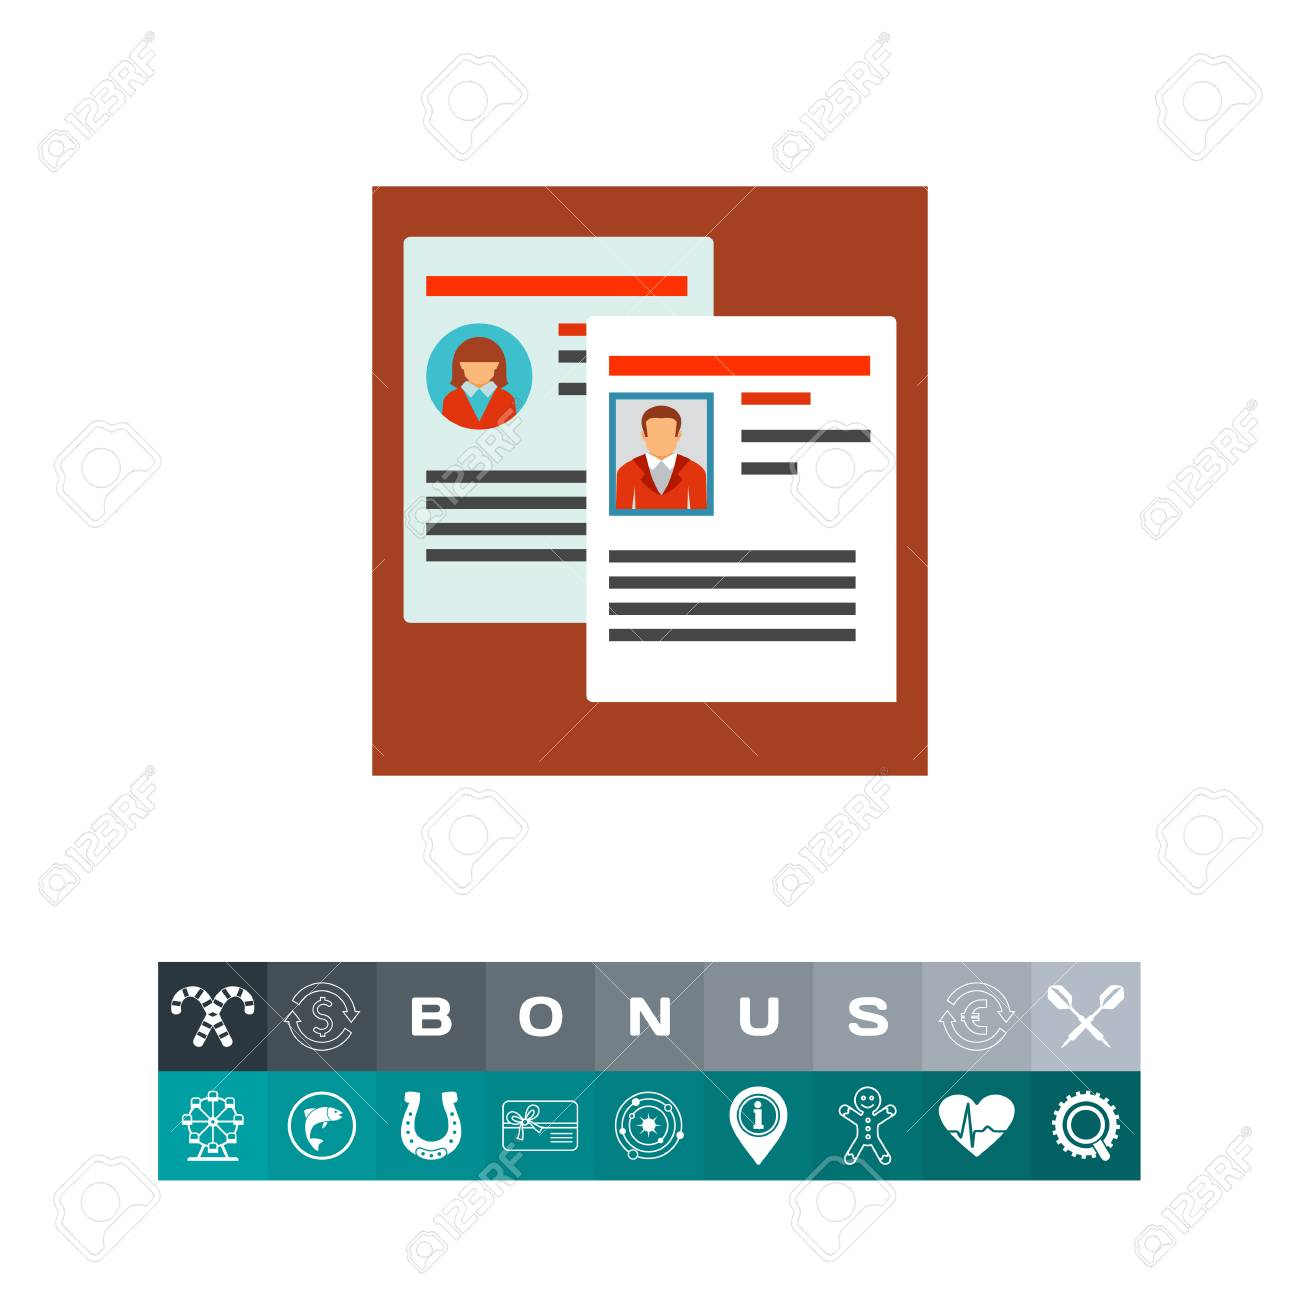 vector vector icon of two employees personal files staff reshuffle resume career head hunting concept can be used for topics like business